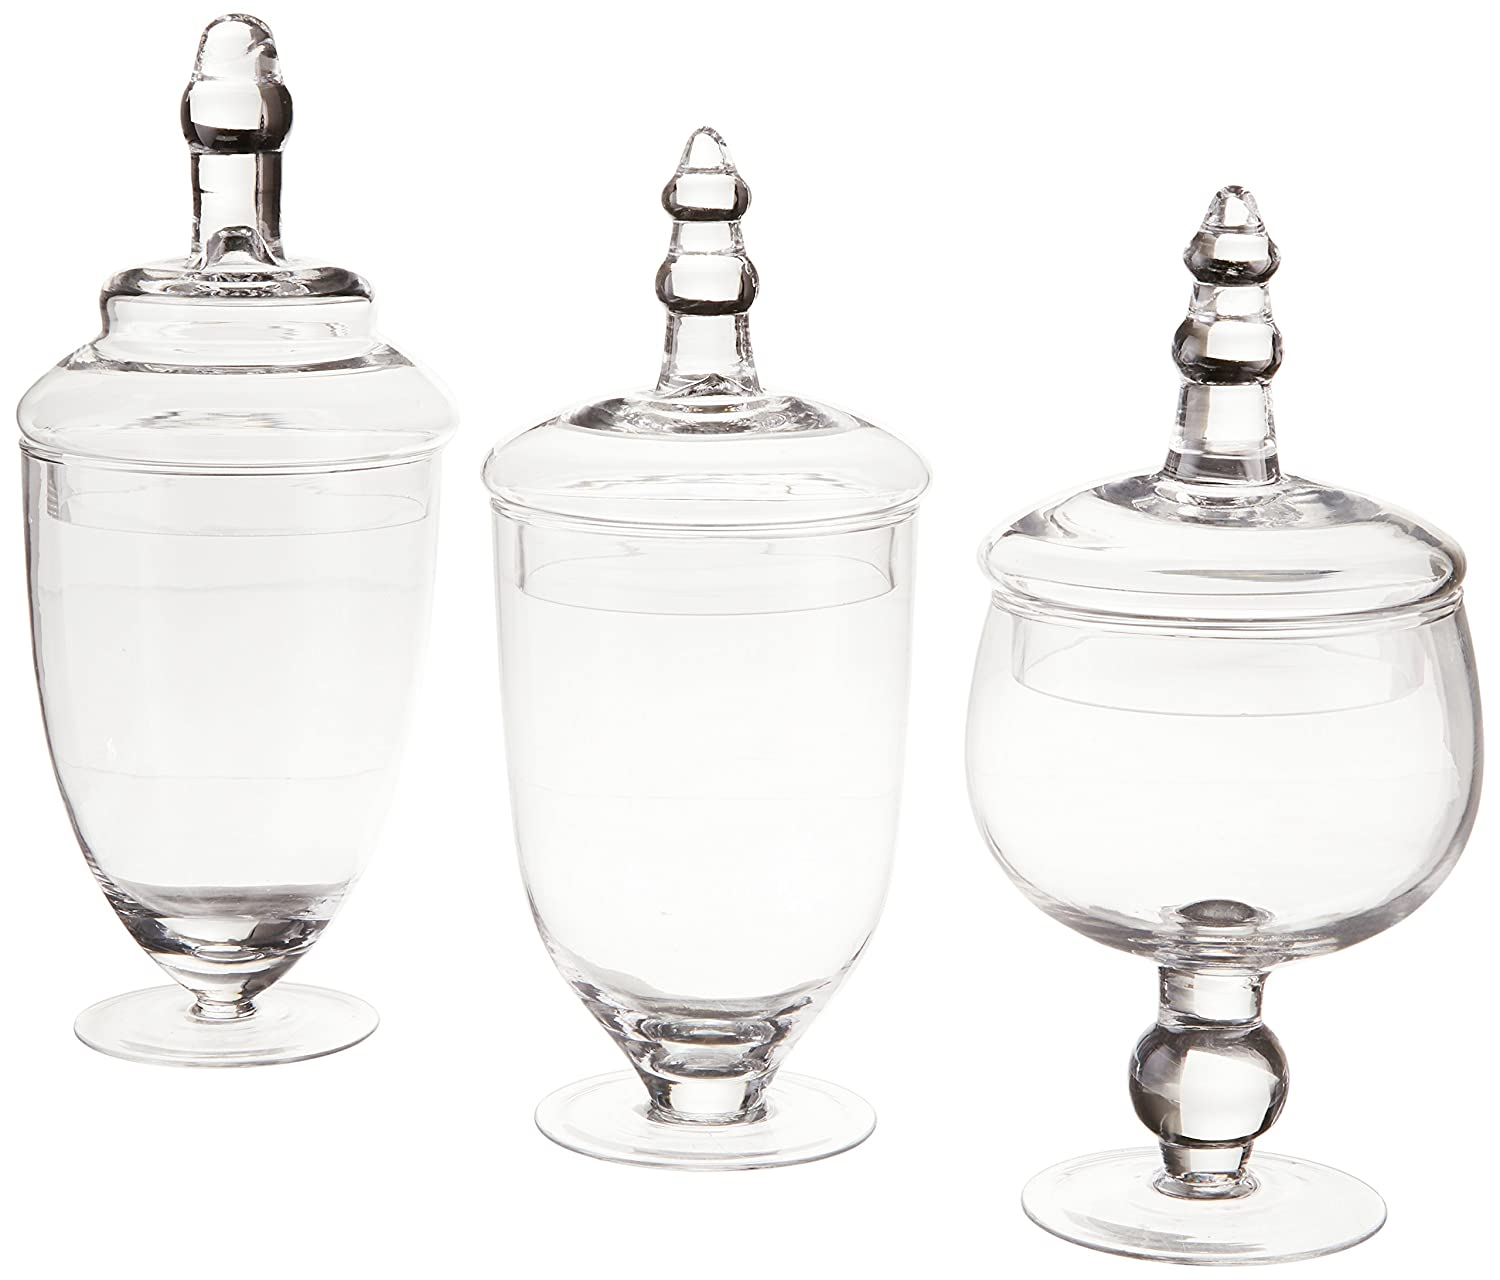 glass candy jars apothecary jars